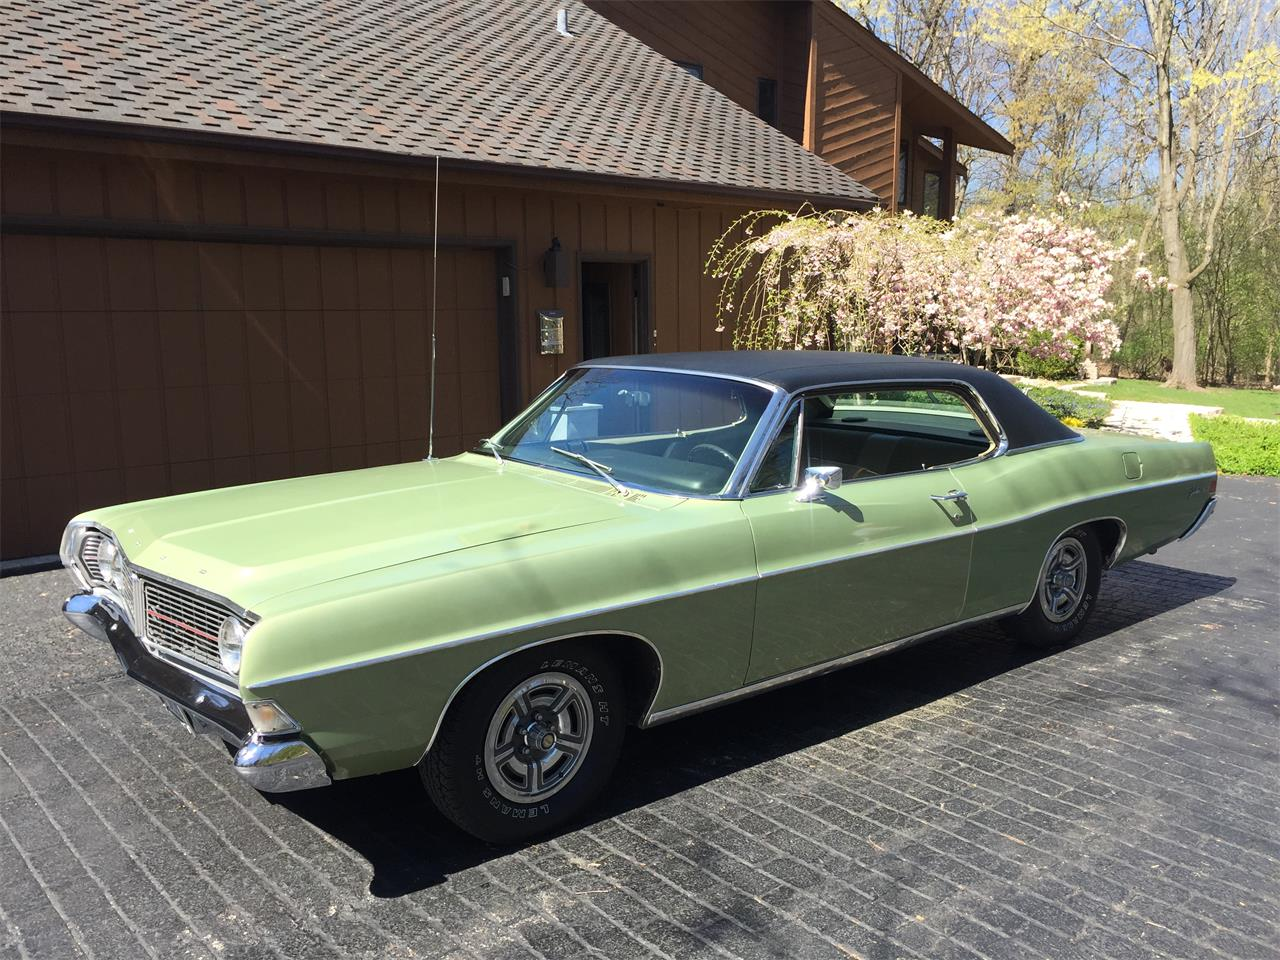 Large picture of 68 galaxie 500 lfe0